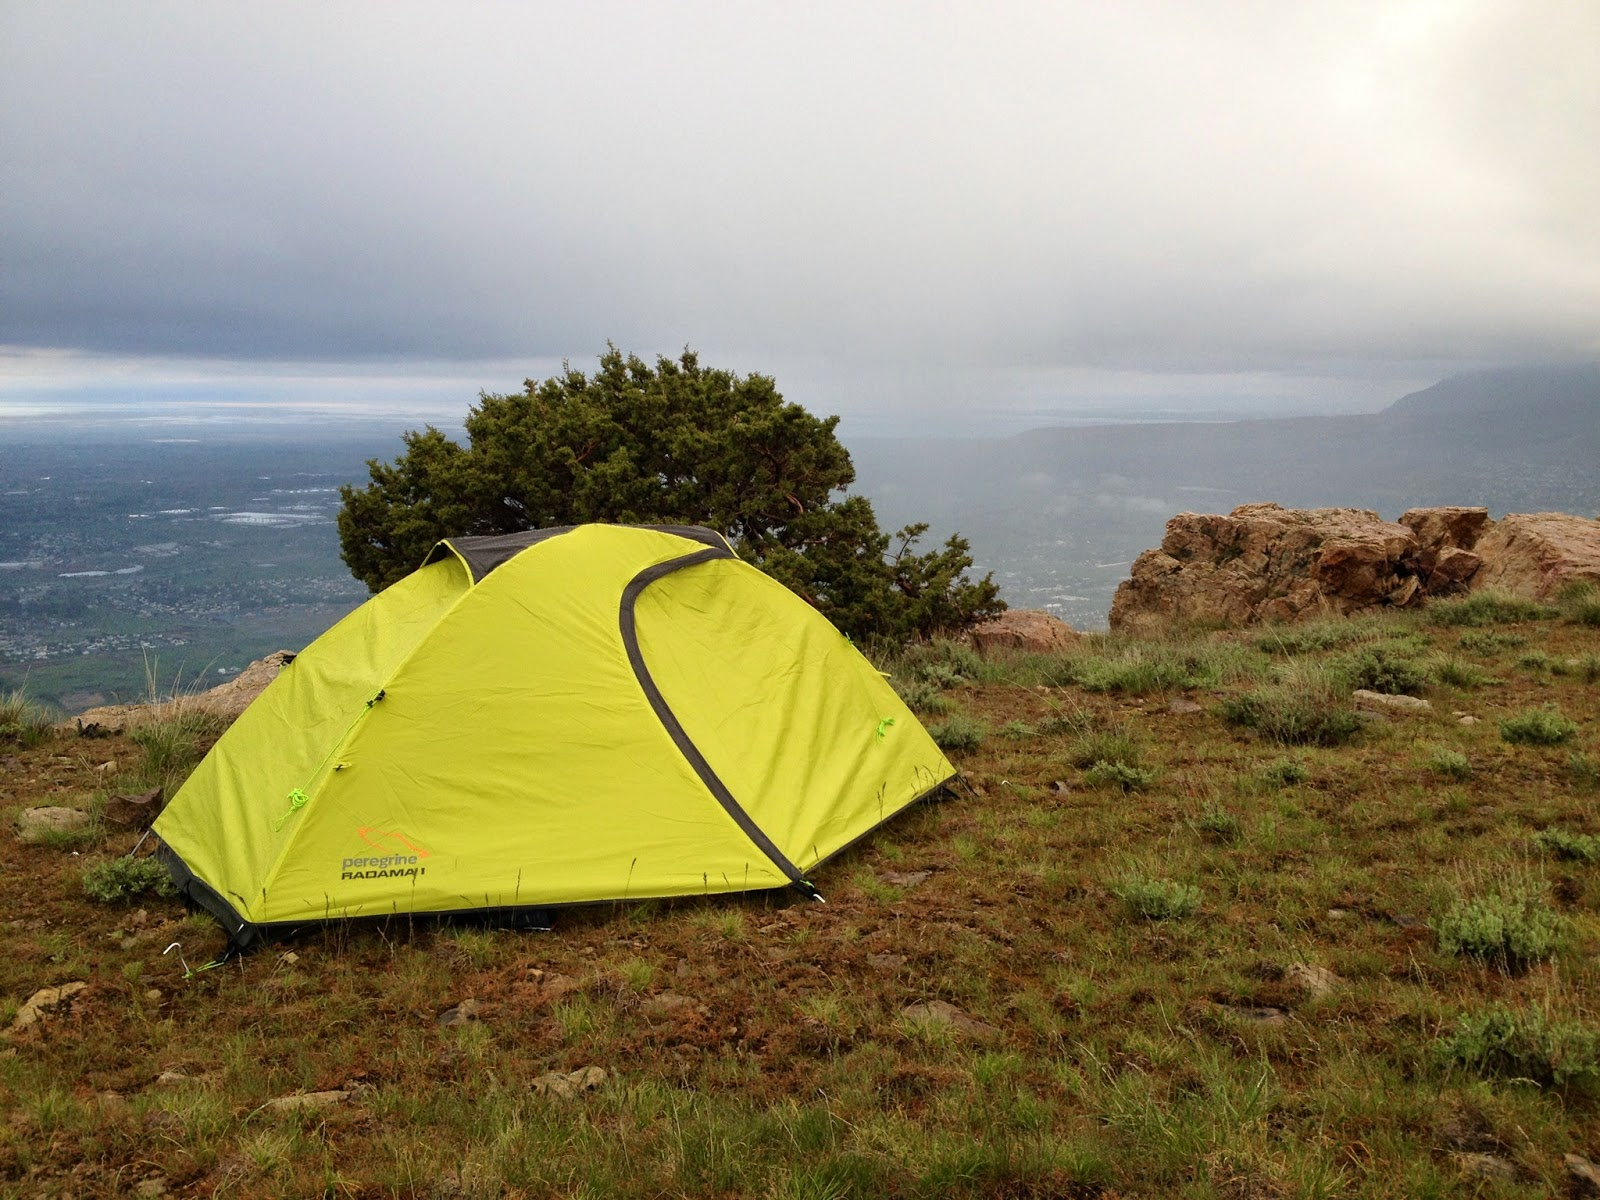 Gear Review Peregrine Radama 1 Tent & Everything For The Outdoors: Gear Review: Peregrine Radama 1 Tent